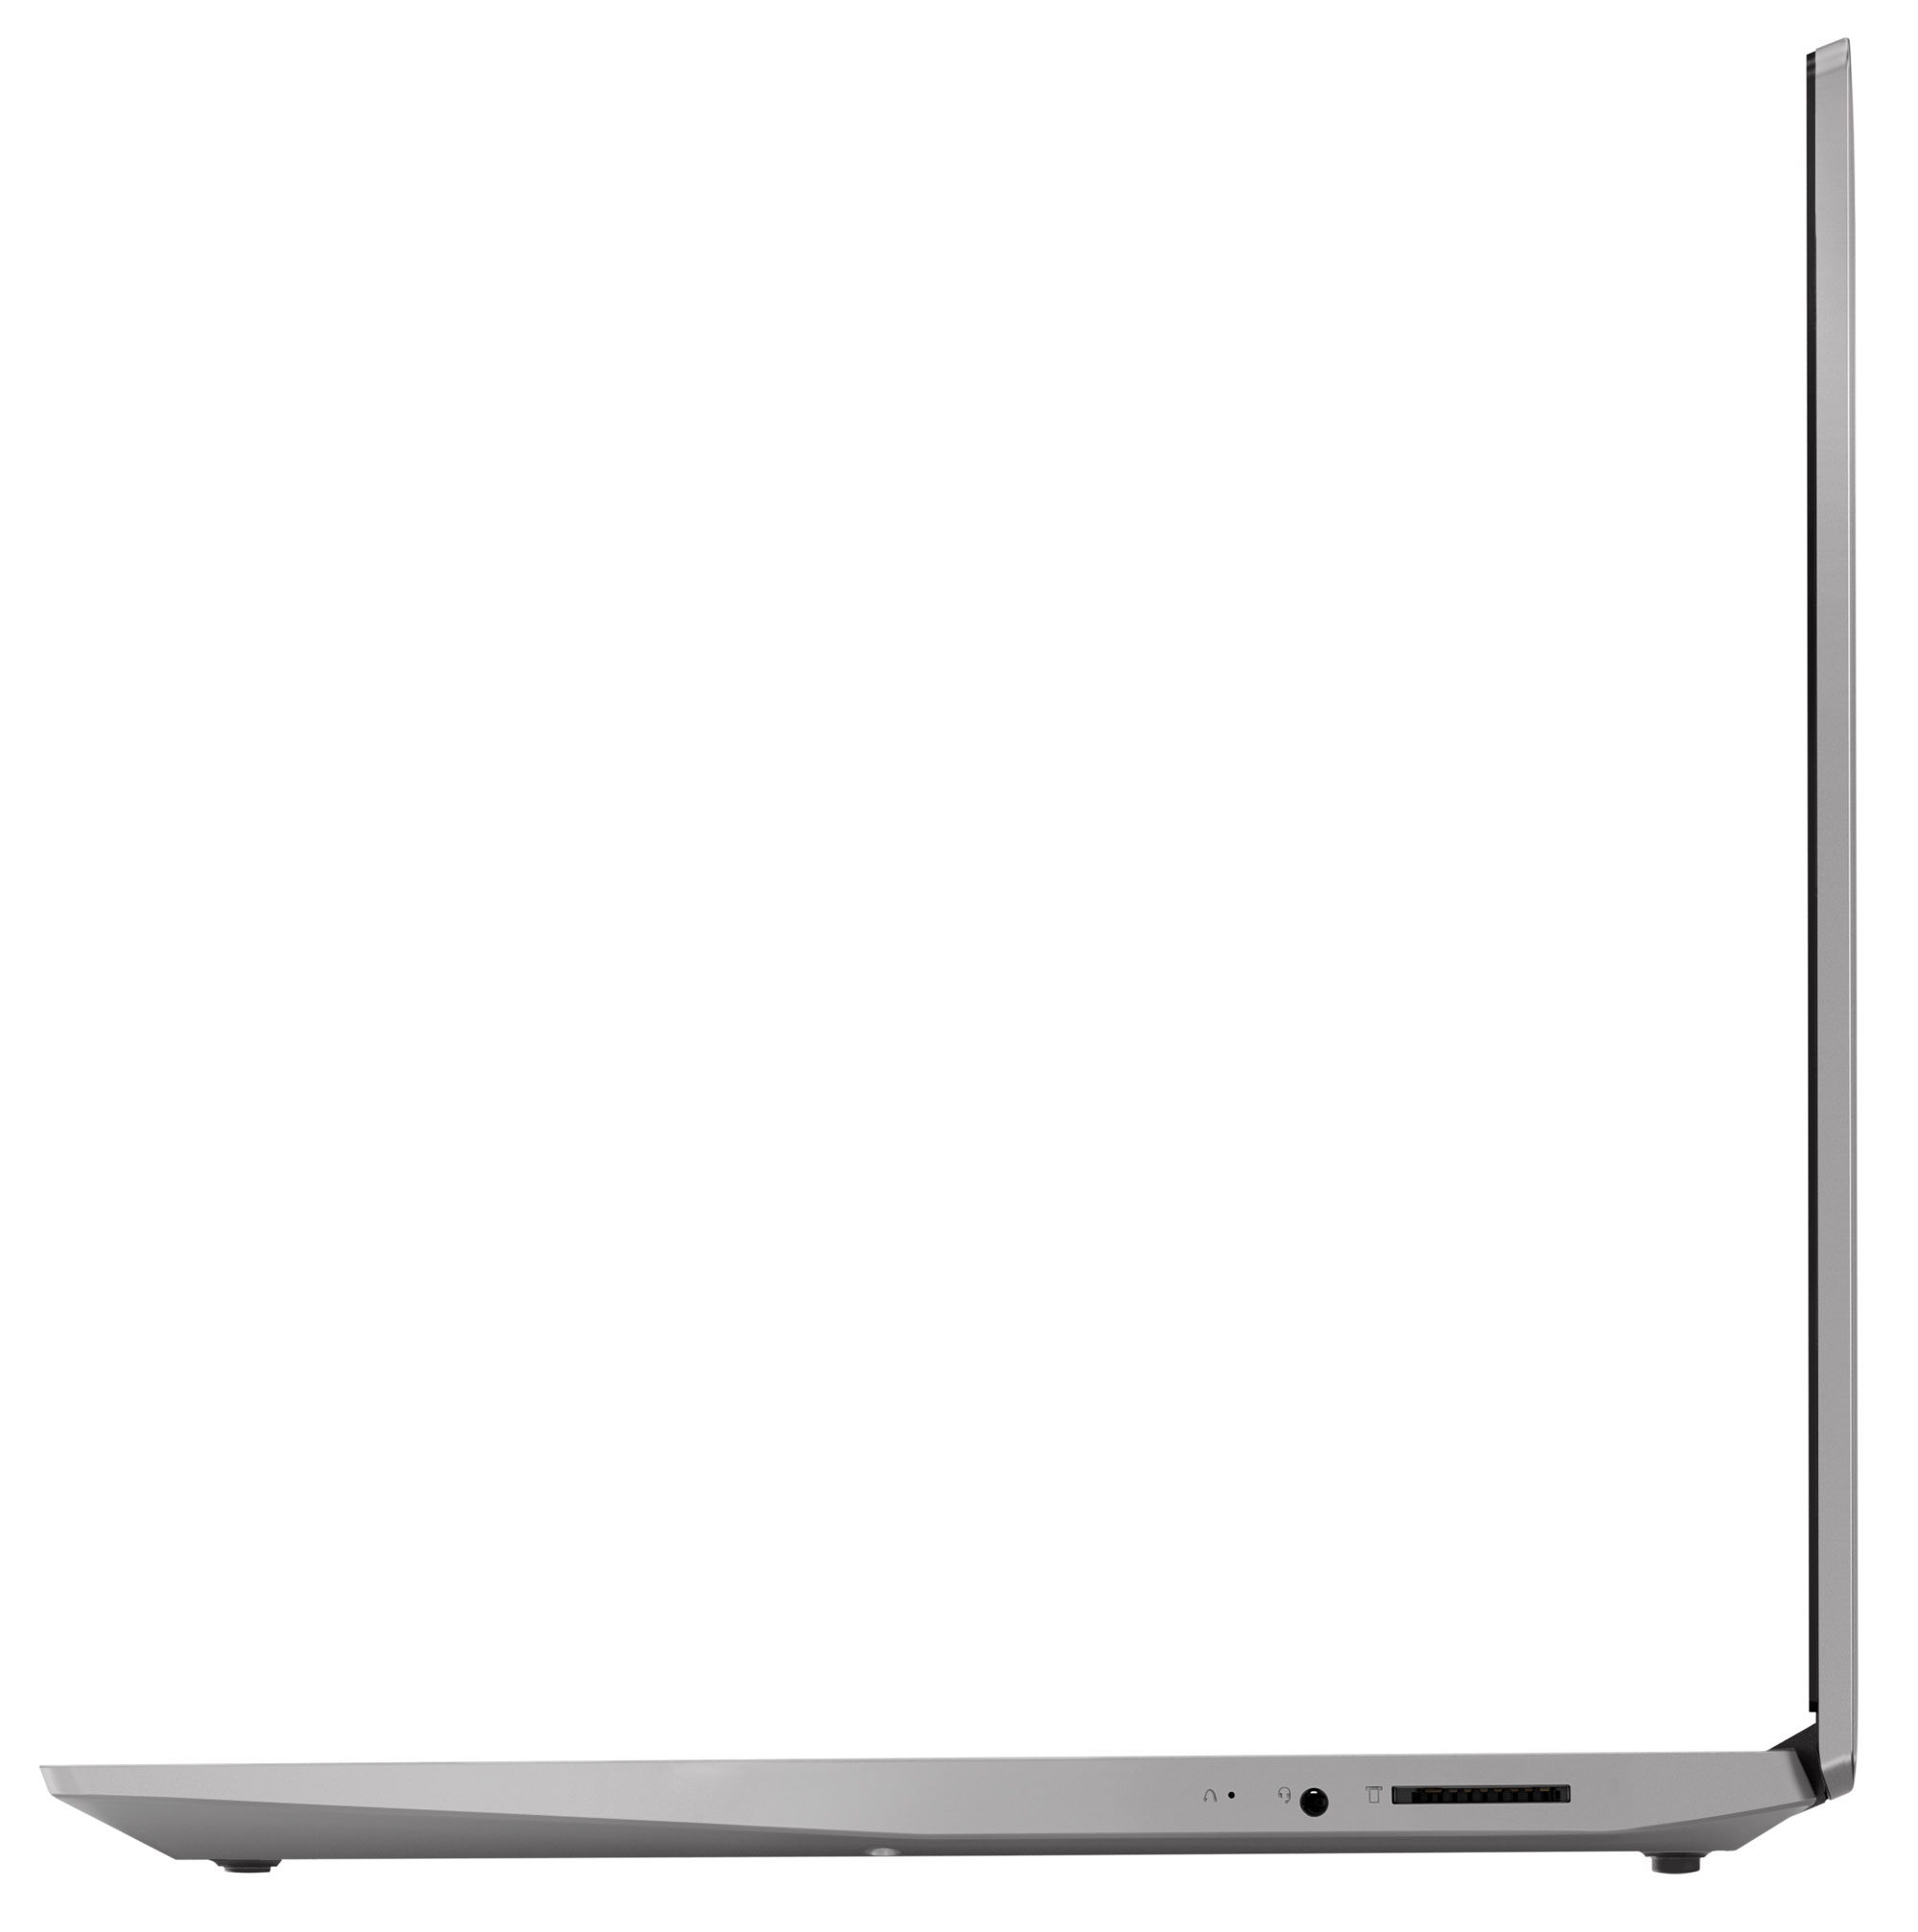 Фото  Ноутбук Lenovo ideapad S145-15IGM Grey (81MX003JRE)